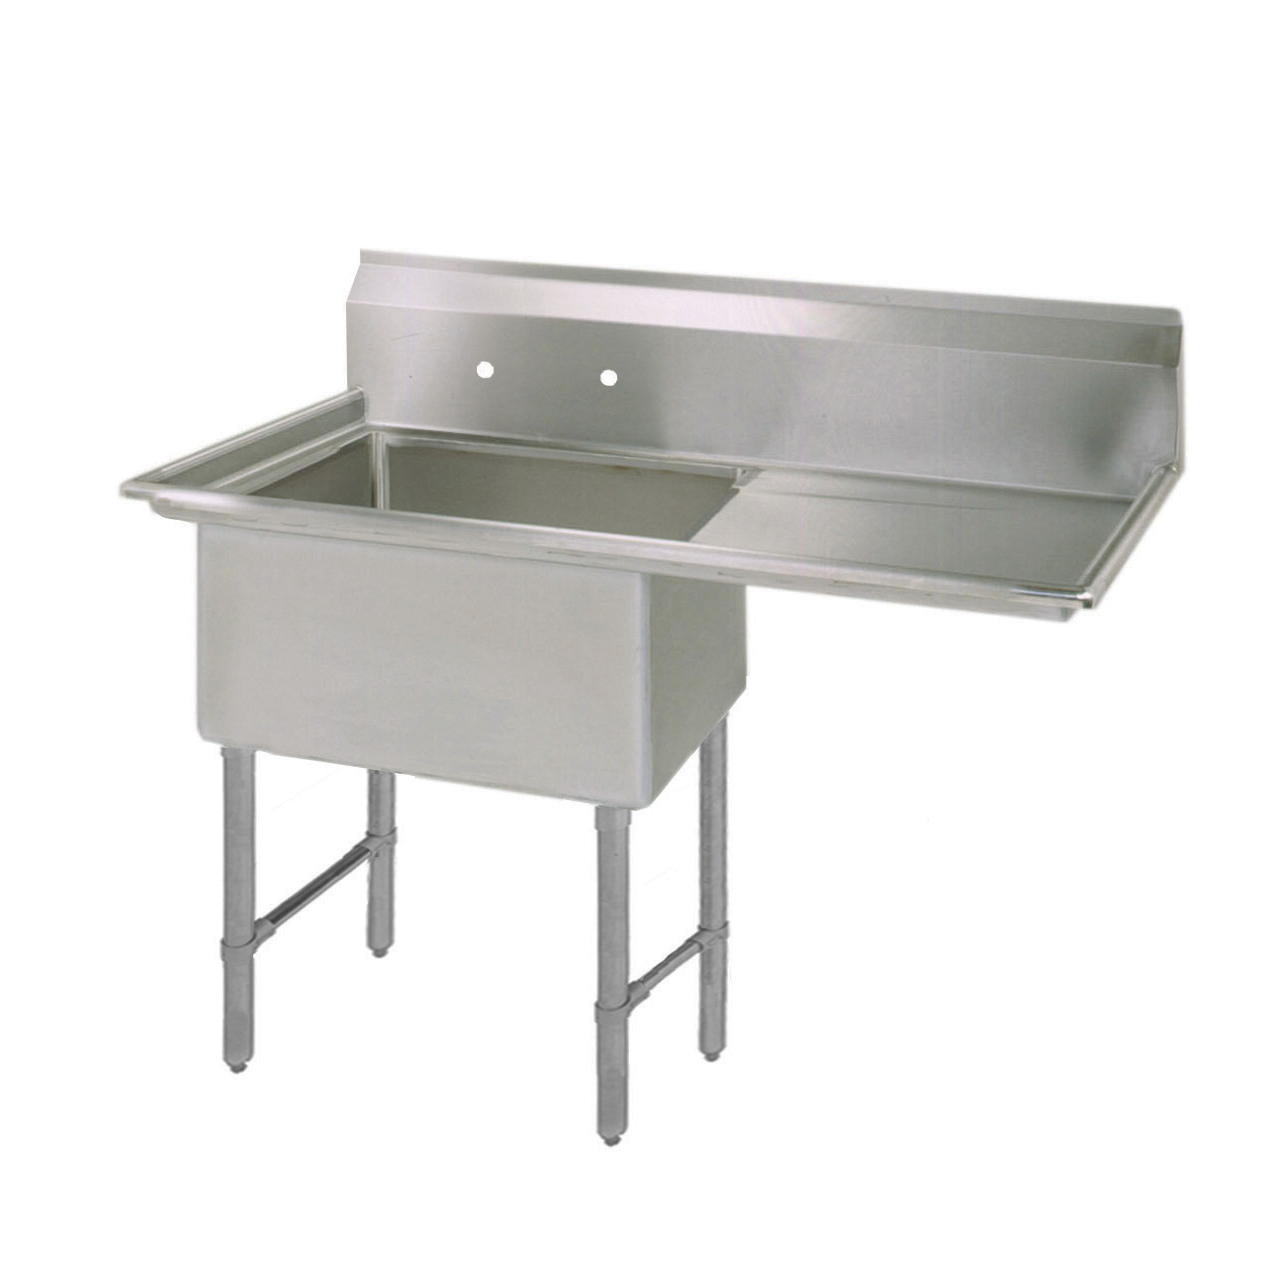 BK Resources BKS-1-1824-14-24RS sink, (1) one compartment